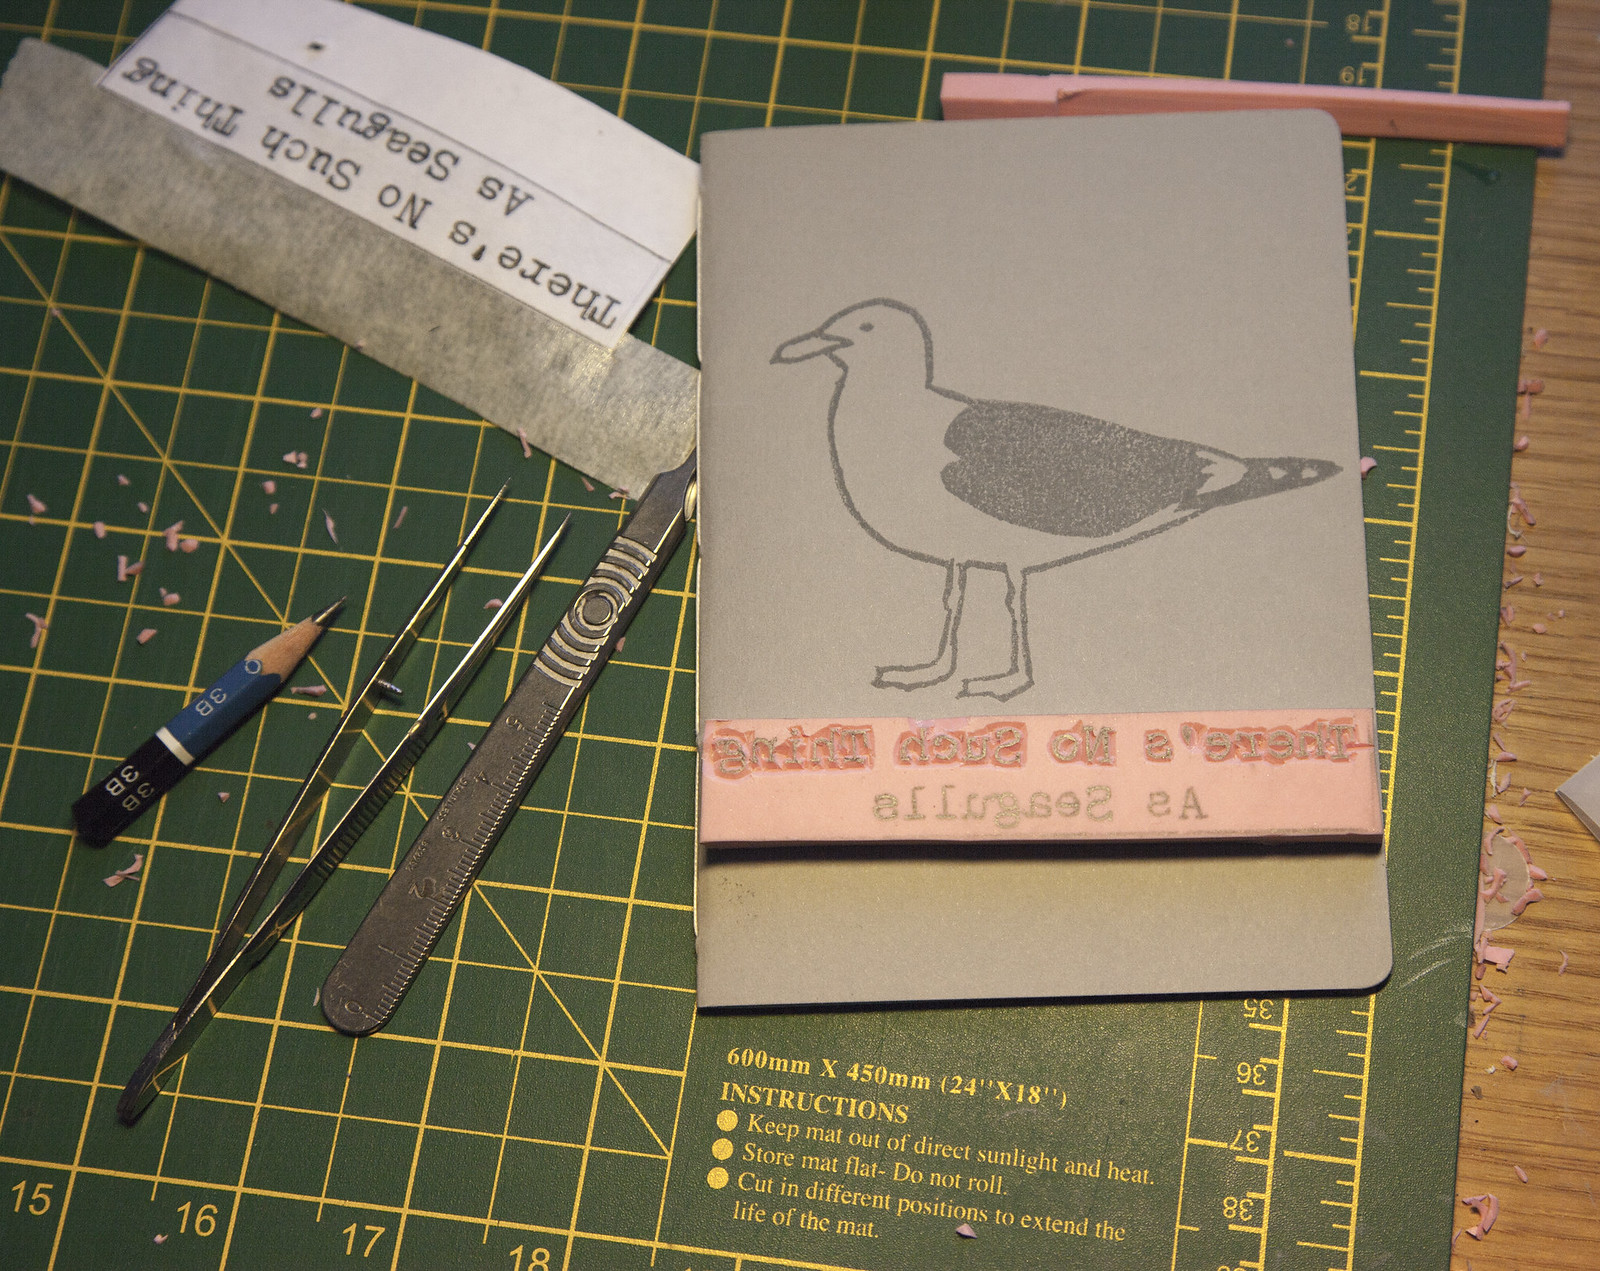 There's No Such Thing As Seagulls - Artists Book